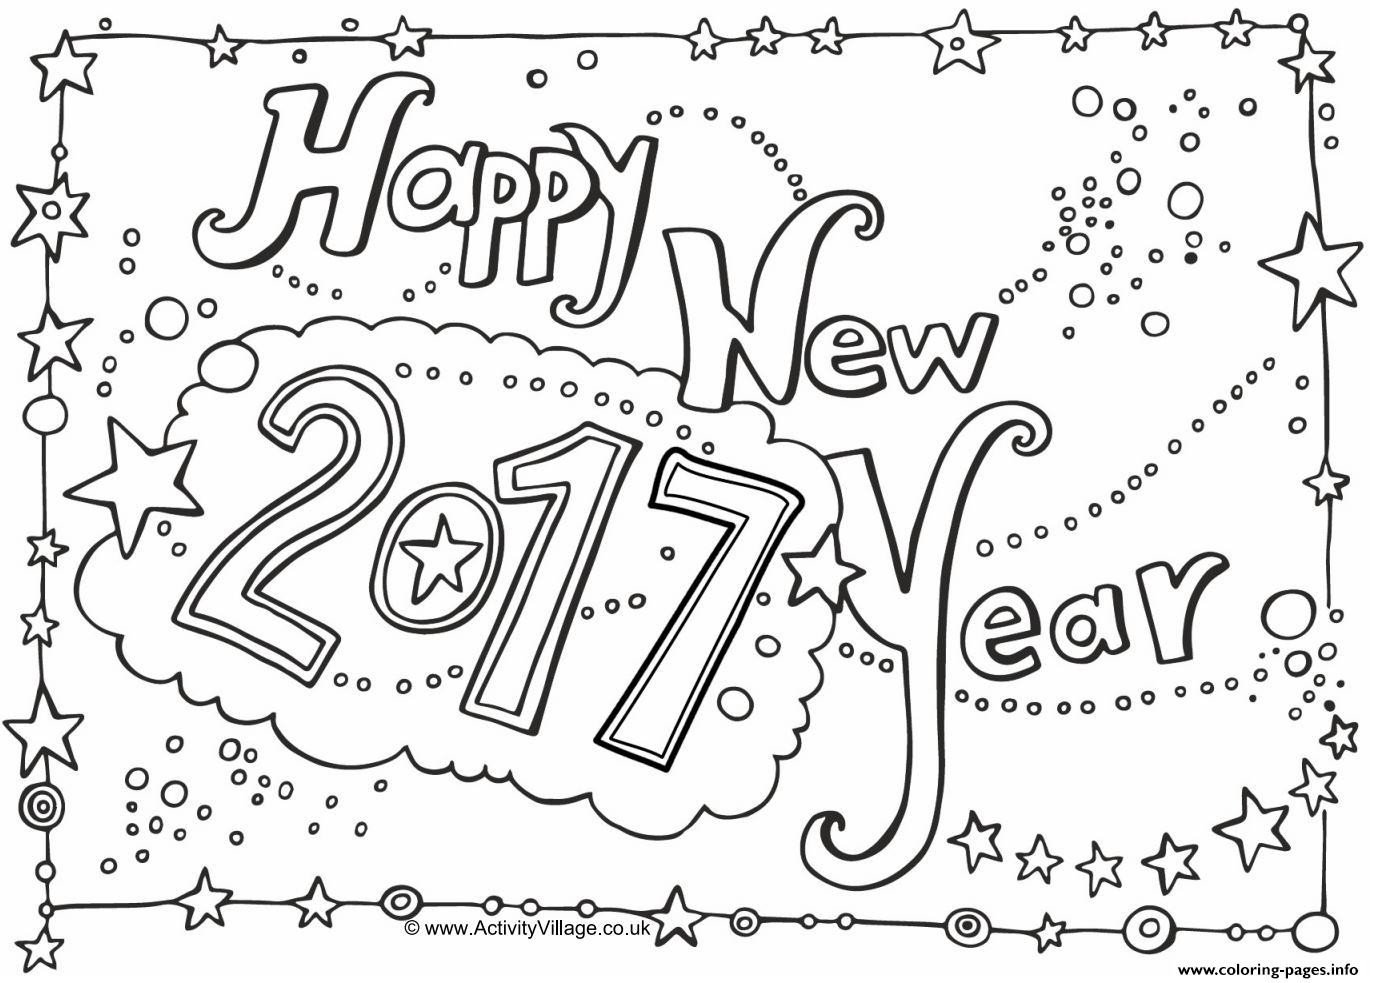 Happy New Year 2017 Coloring pages Printable